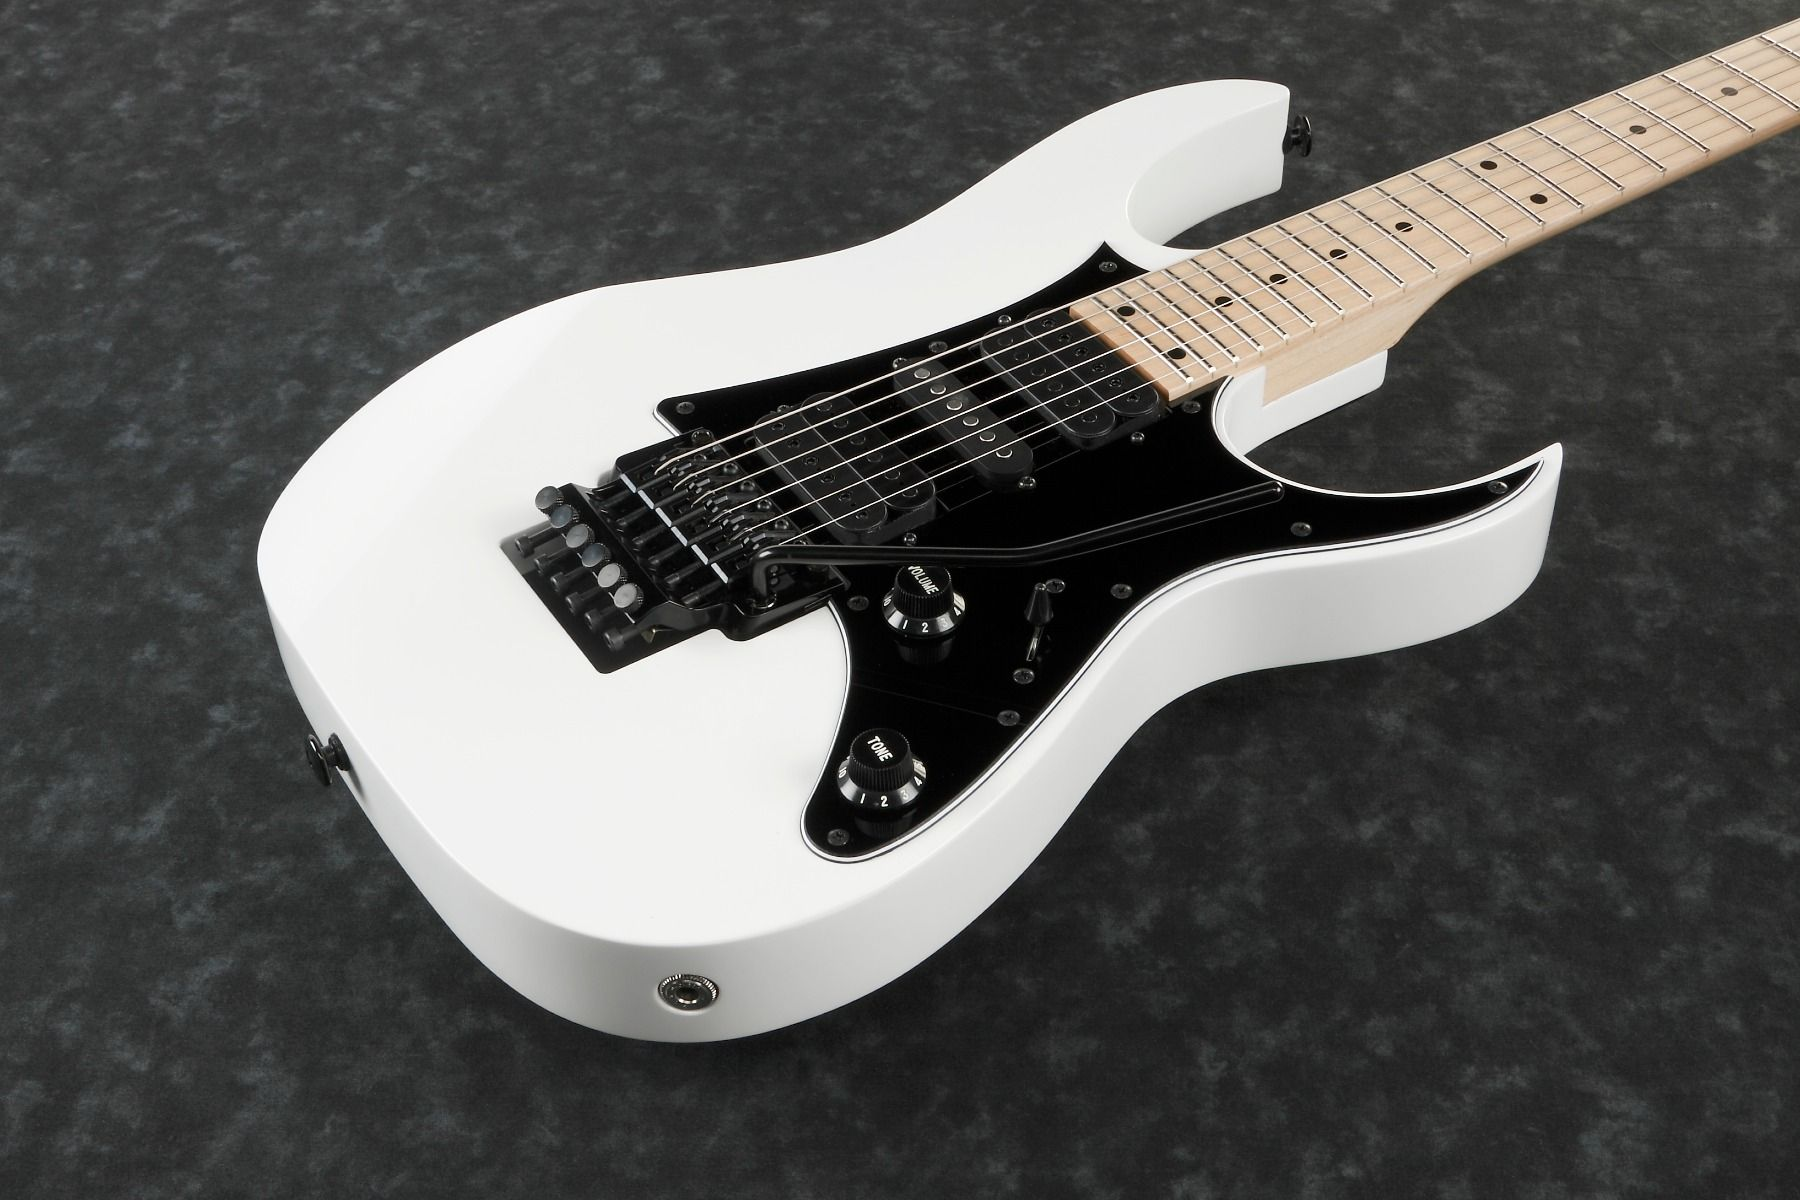 ibanez rg genesis collection white rg550 wh electric guitar rg550wh. Black Bedroom Furniture Sets. Home Design Ideas